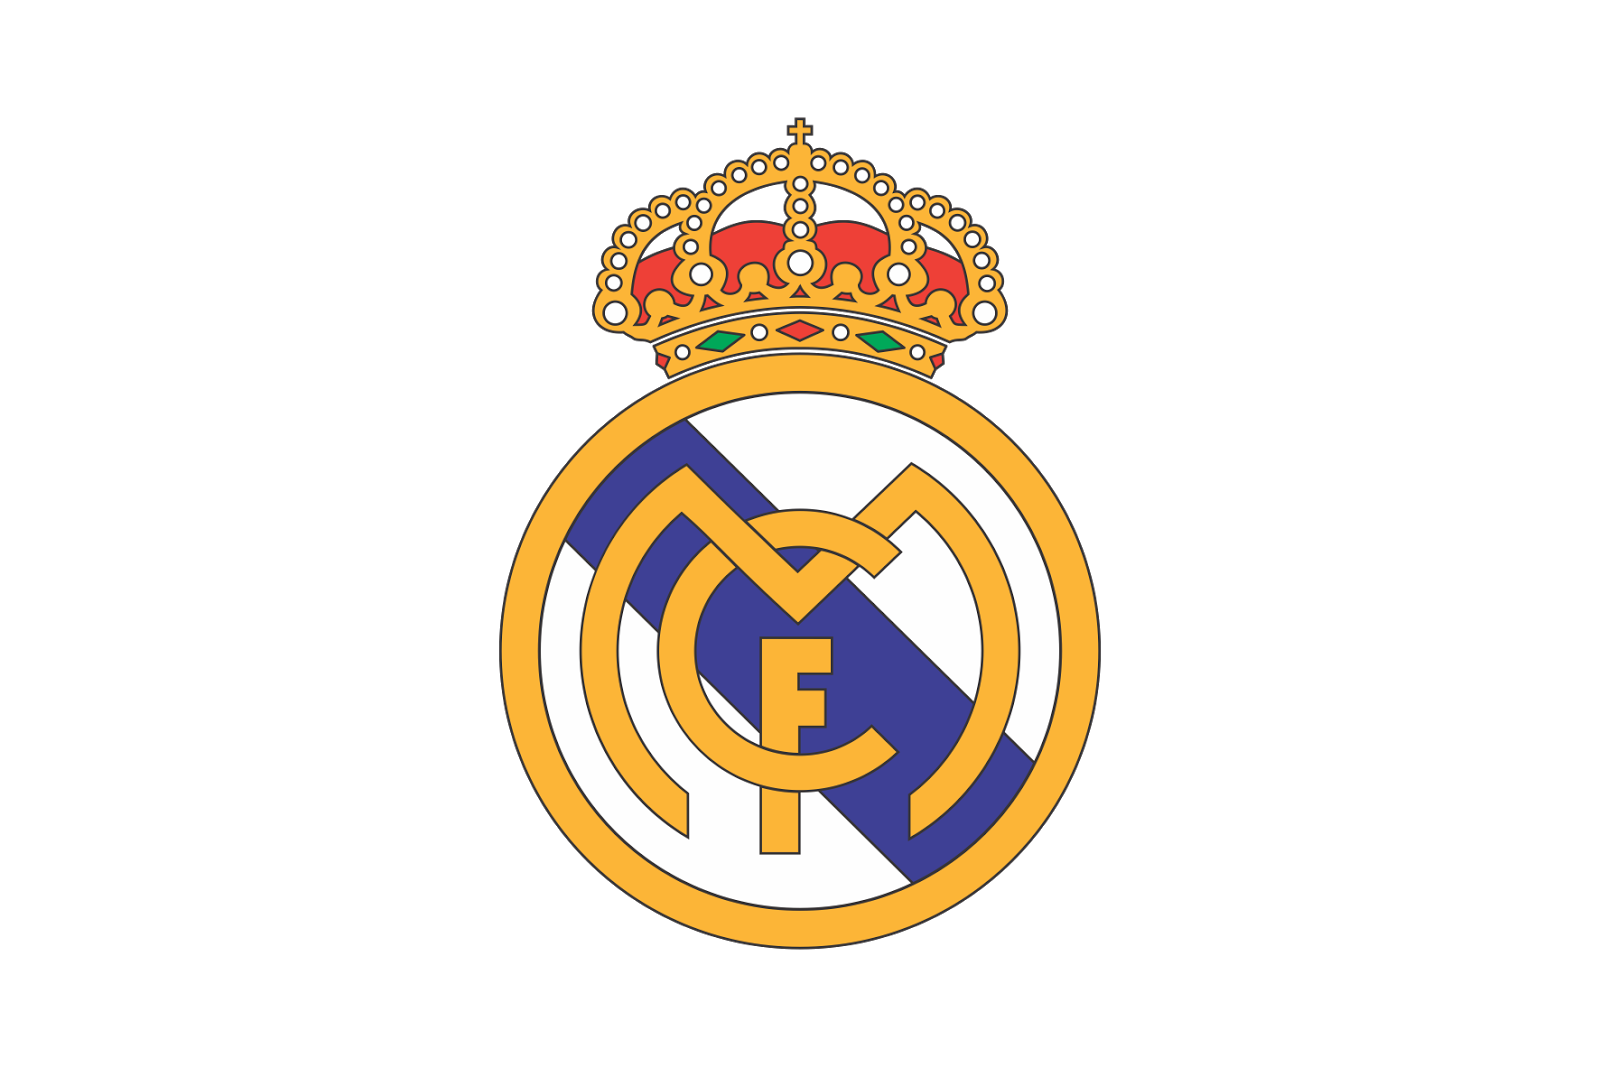 Real madrid cf logo logo share real madrid cf logo voltagebd Images